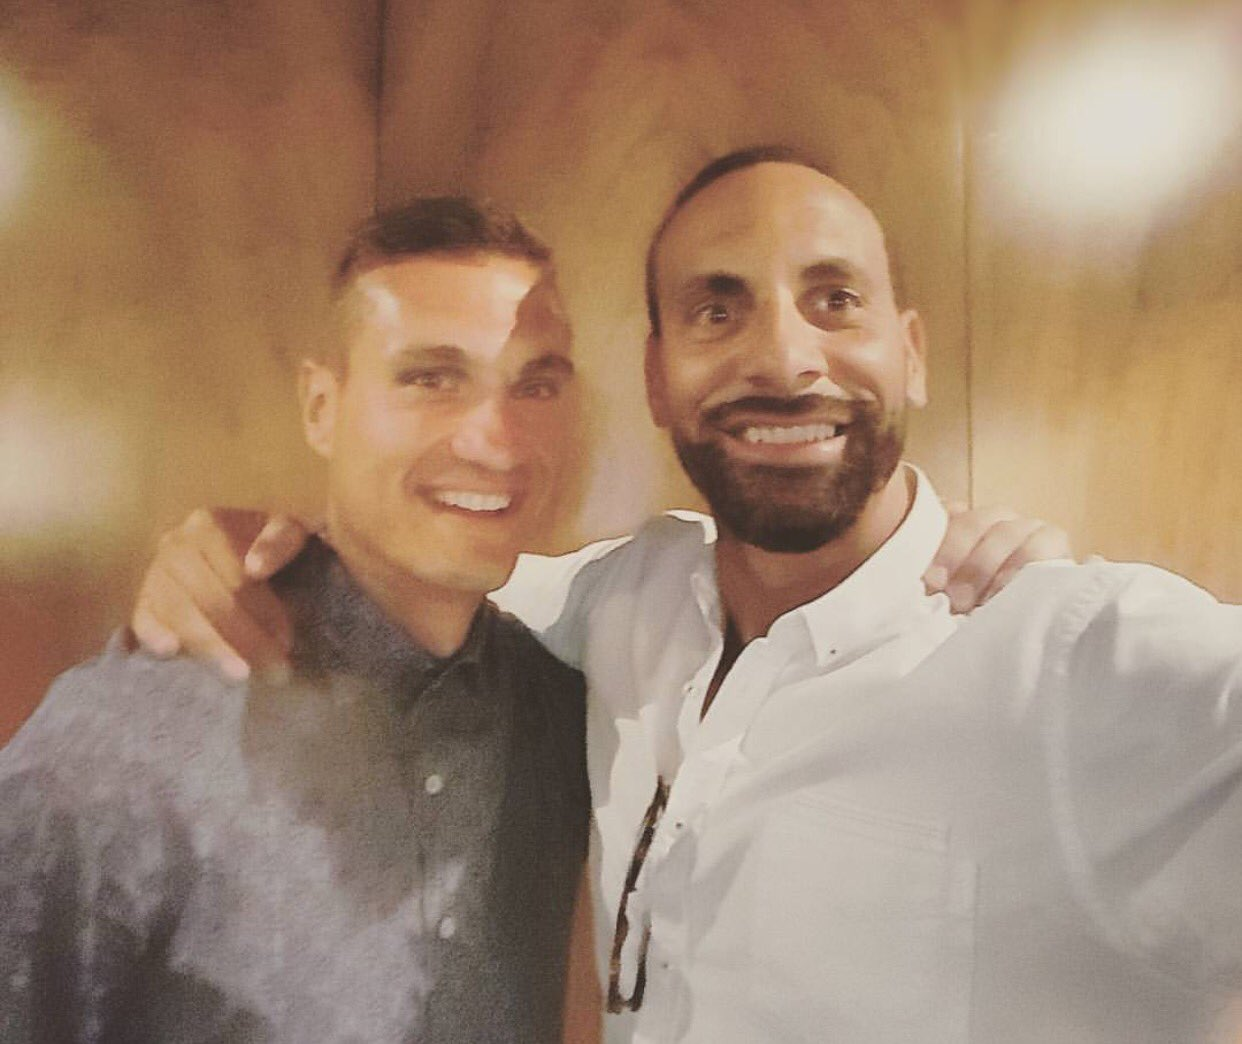 Reunited with my guy! Spent time reminiscing old times!! Partnerships like I had with this man last forever #vidic https://t.co/K7WDic4pSR